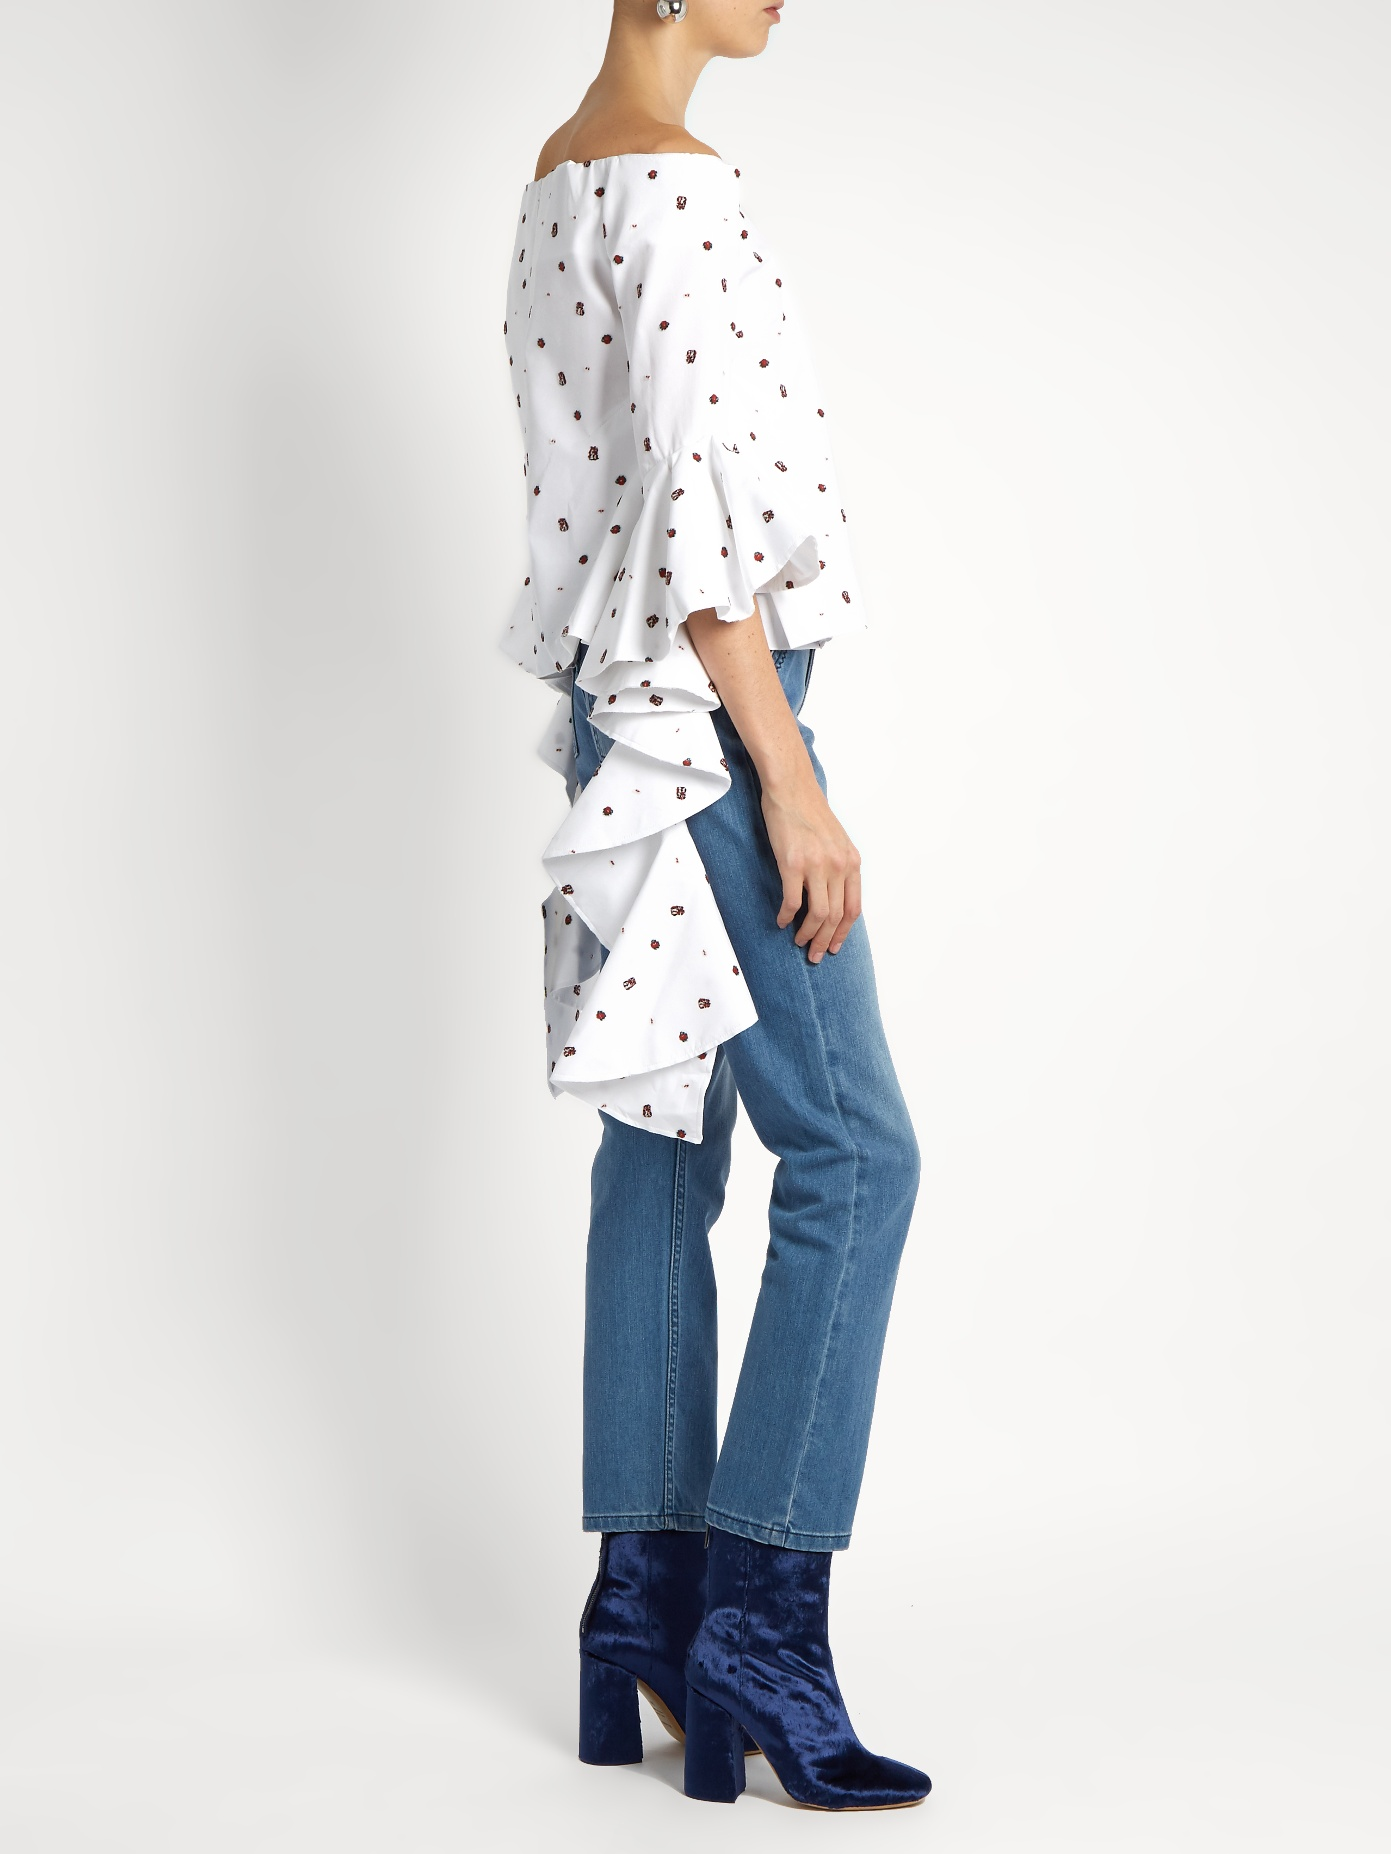 outfit_1066536_1